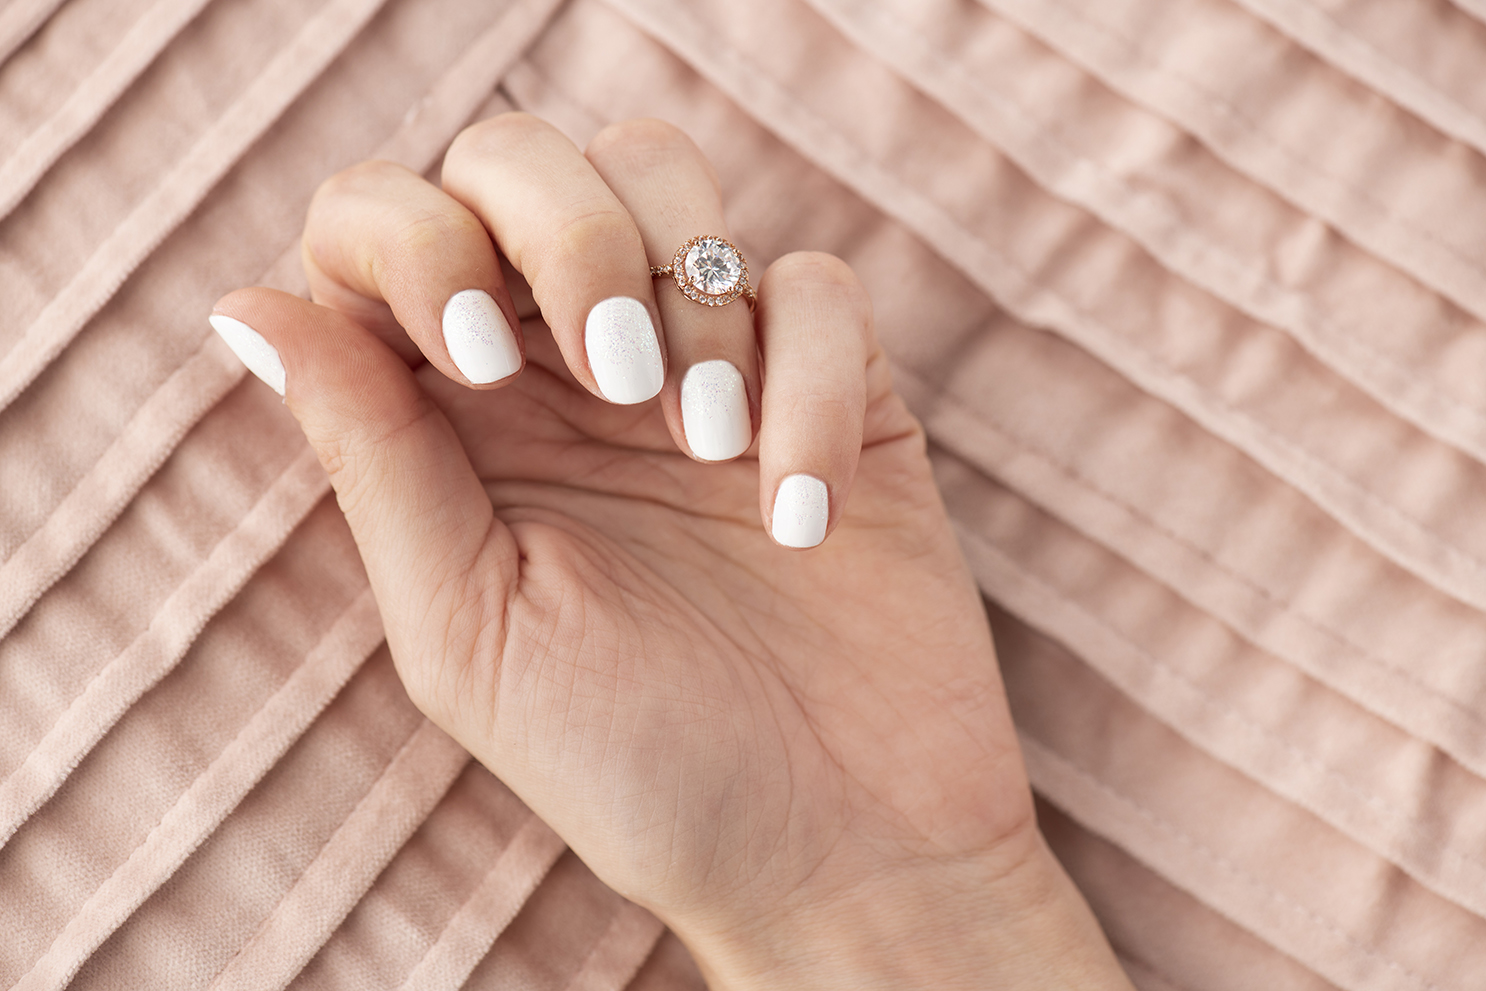 A woman's hand with a white and glitter manicure.